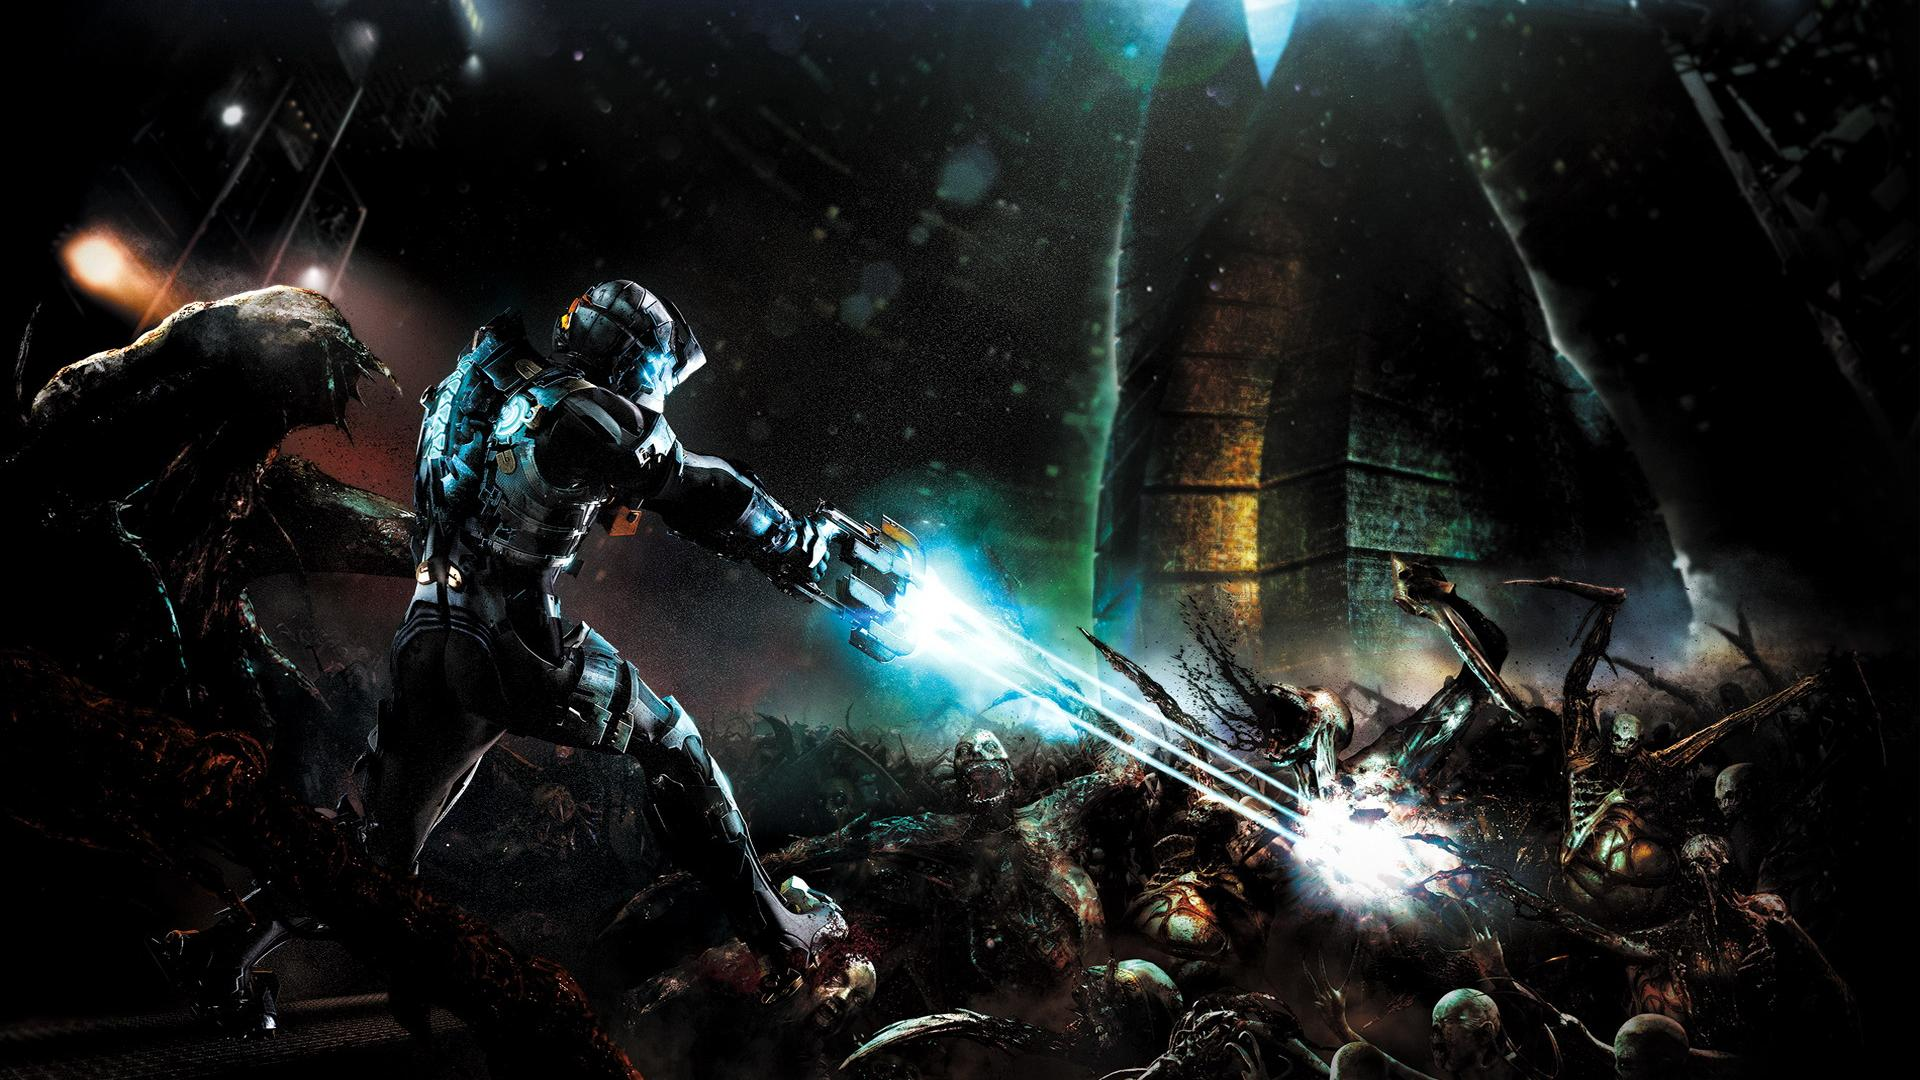 2011-Dead-Space-2-Game-Shooting-game-1080x1920.jpg